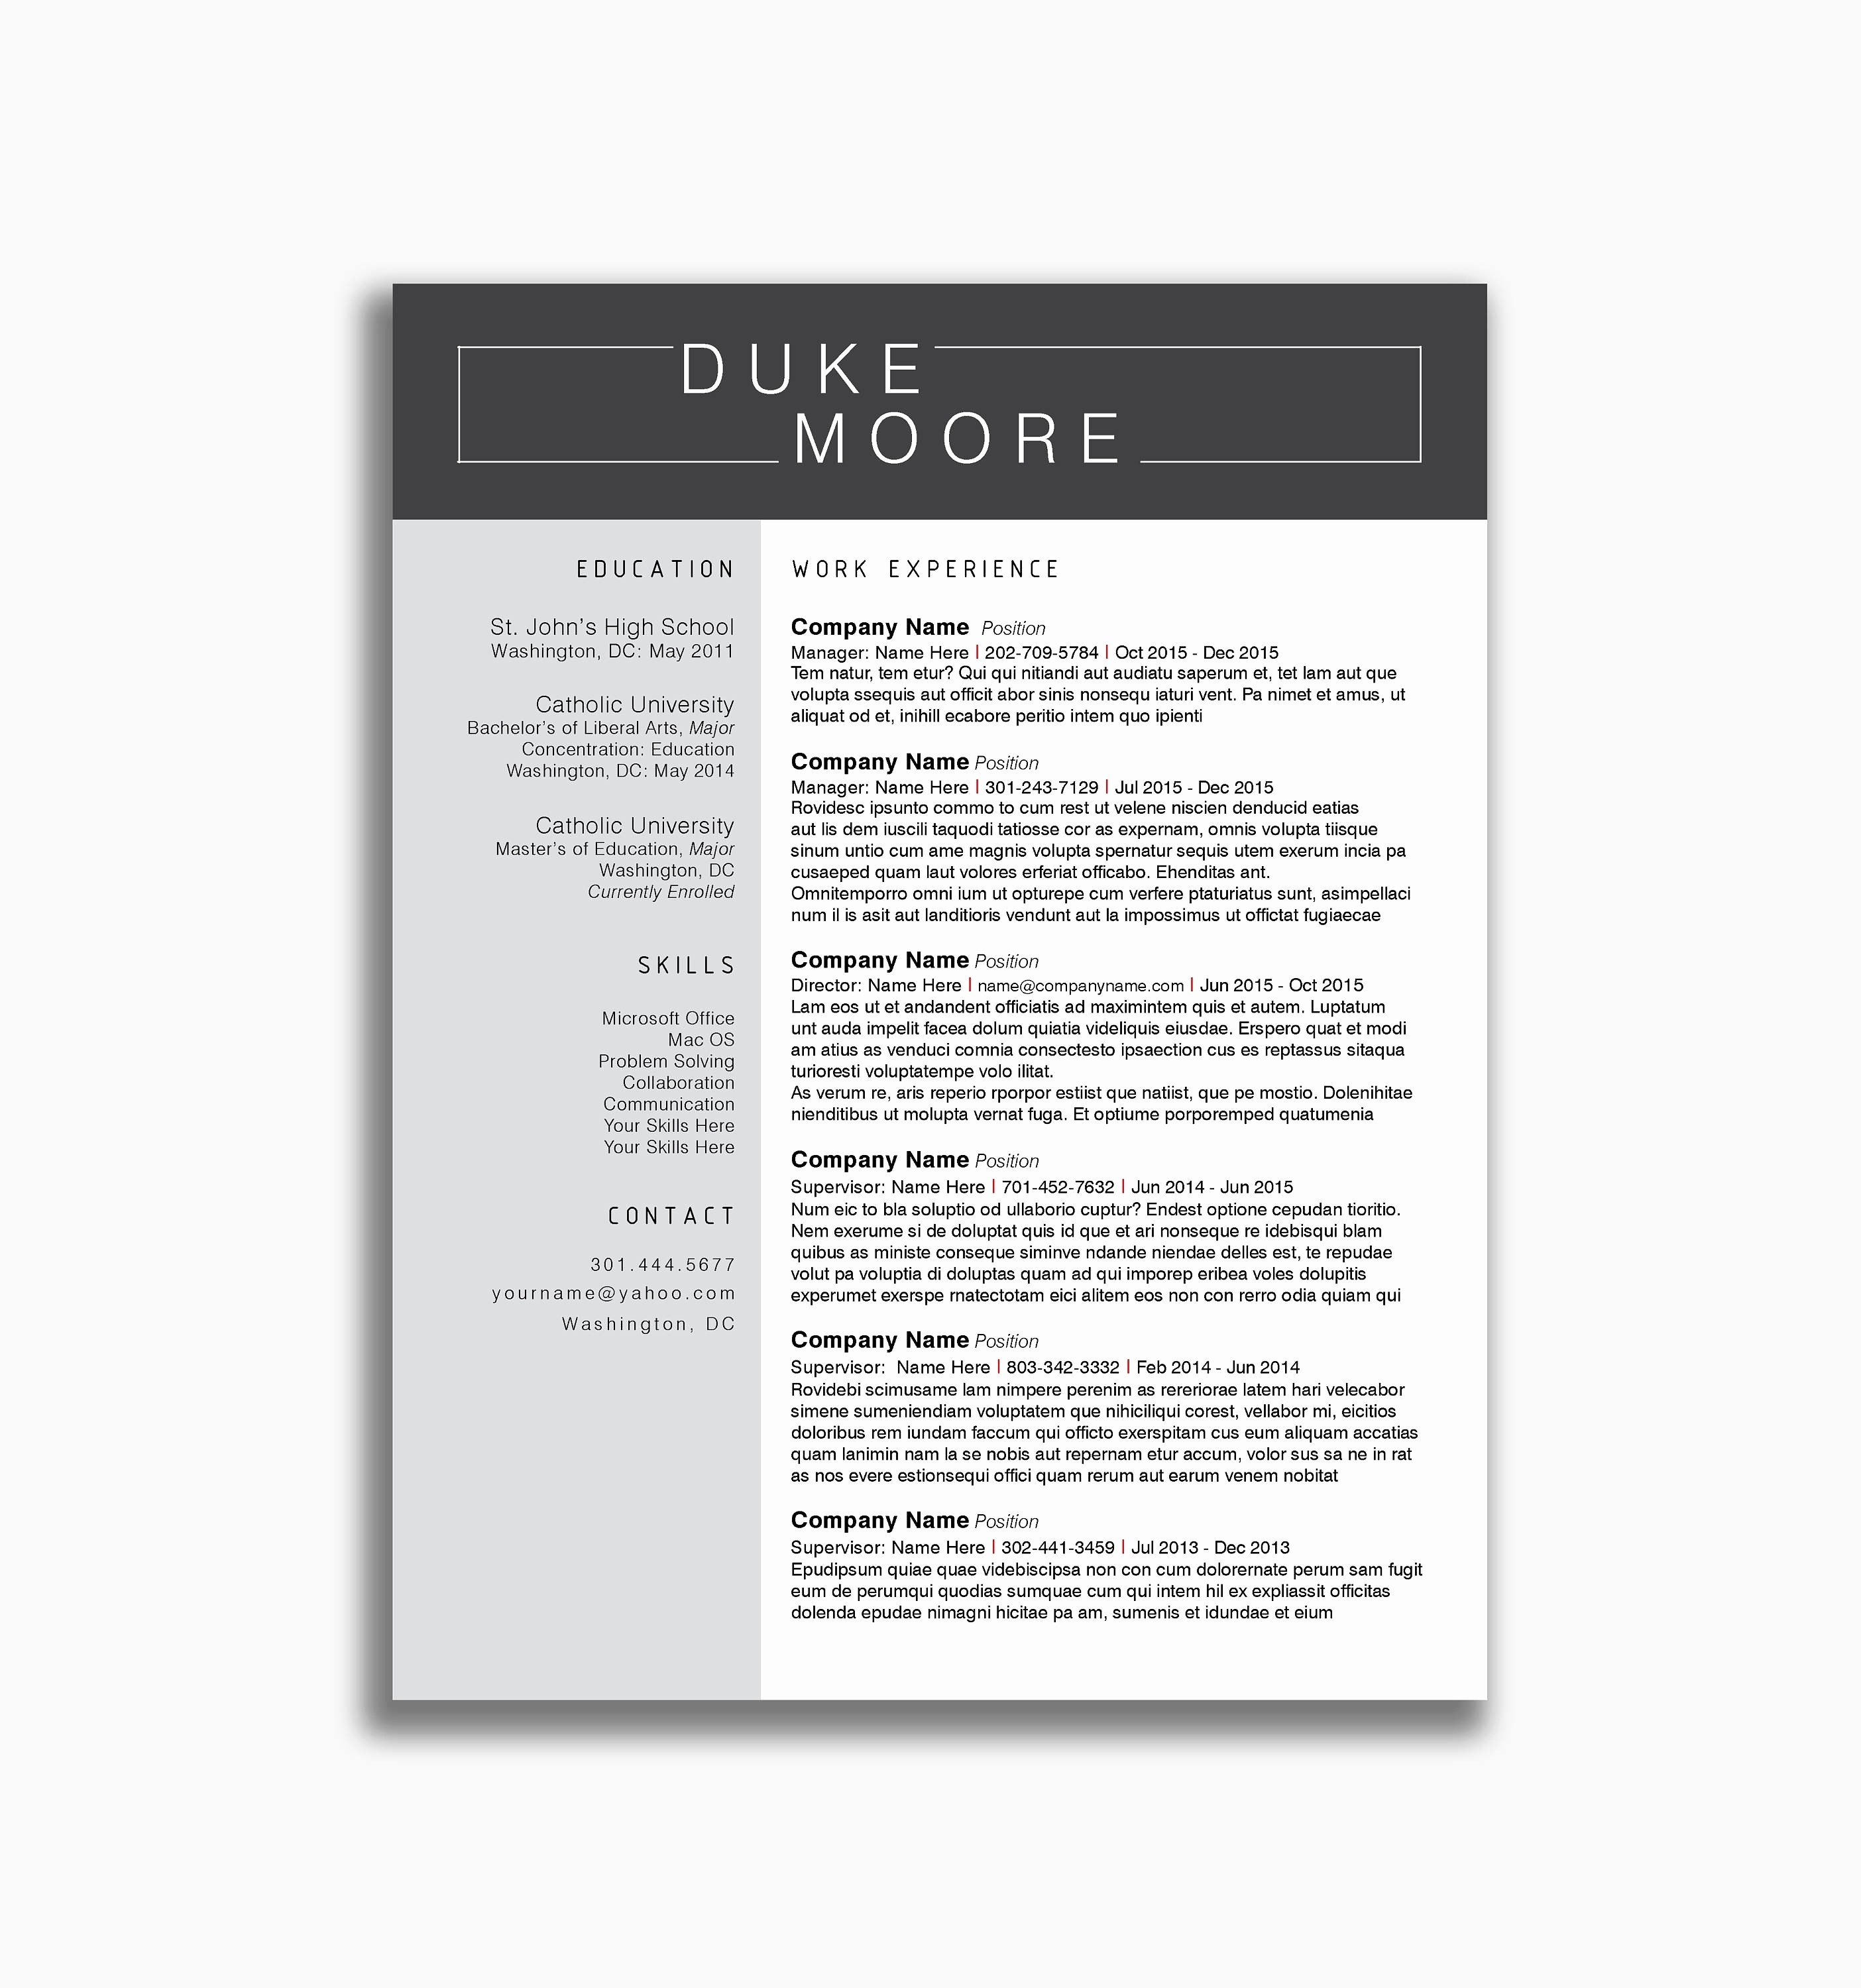 Acting Resume Template Microsoft Word - Modeling Resume Template Microsoft Word Beautiful Modeling Resume